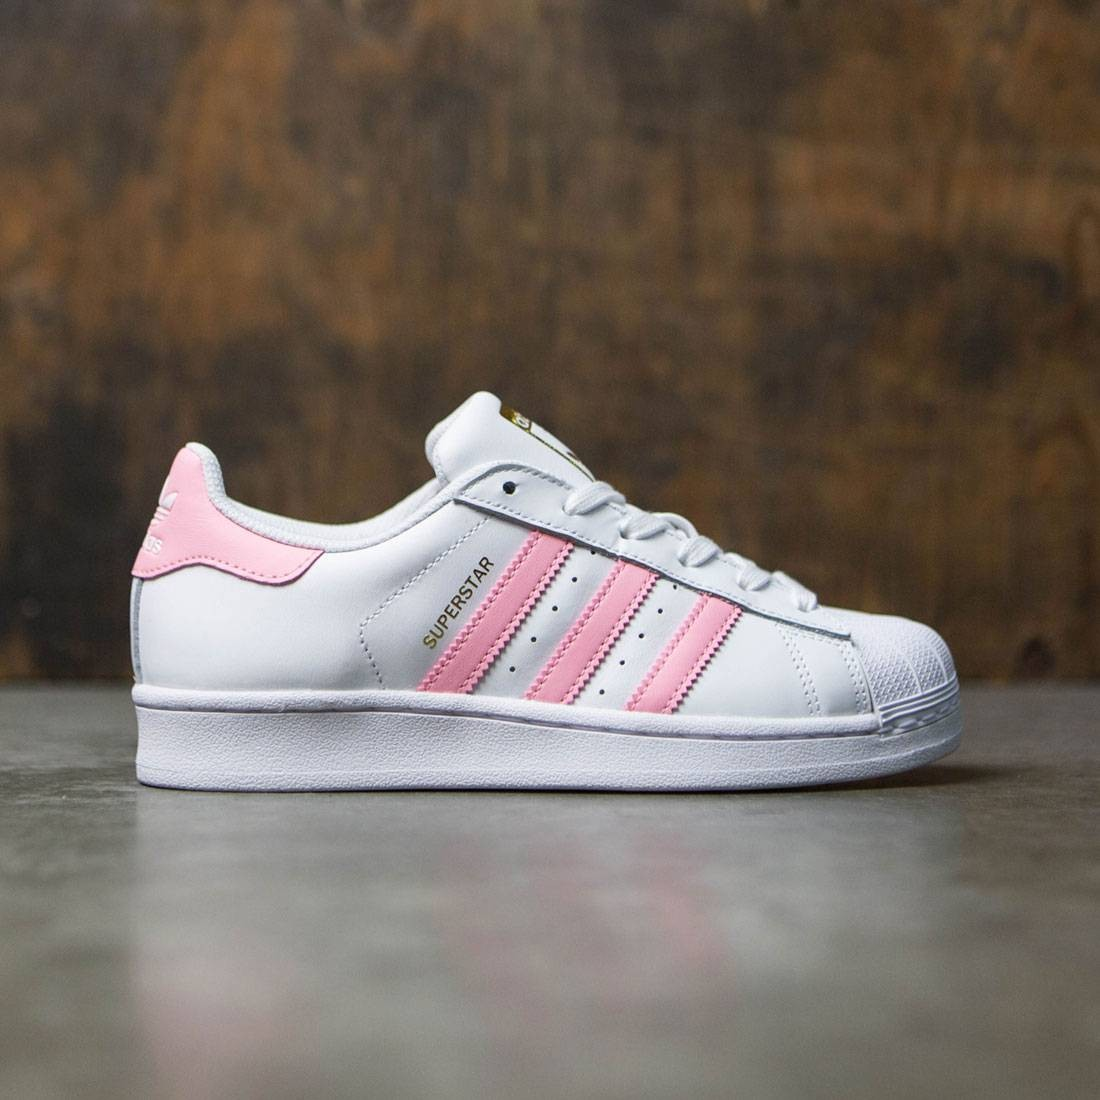 fae2fc33de01 Adidas Women Superstar white clear light pink gold metallic